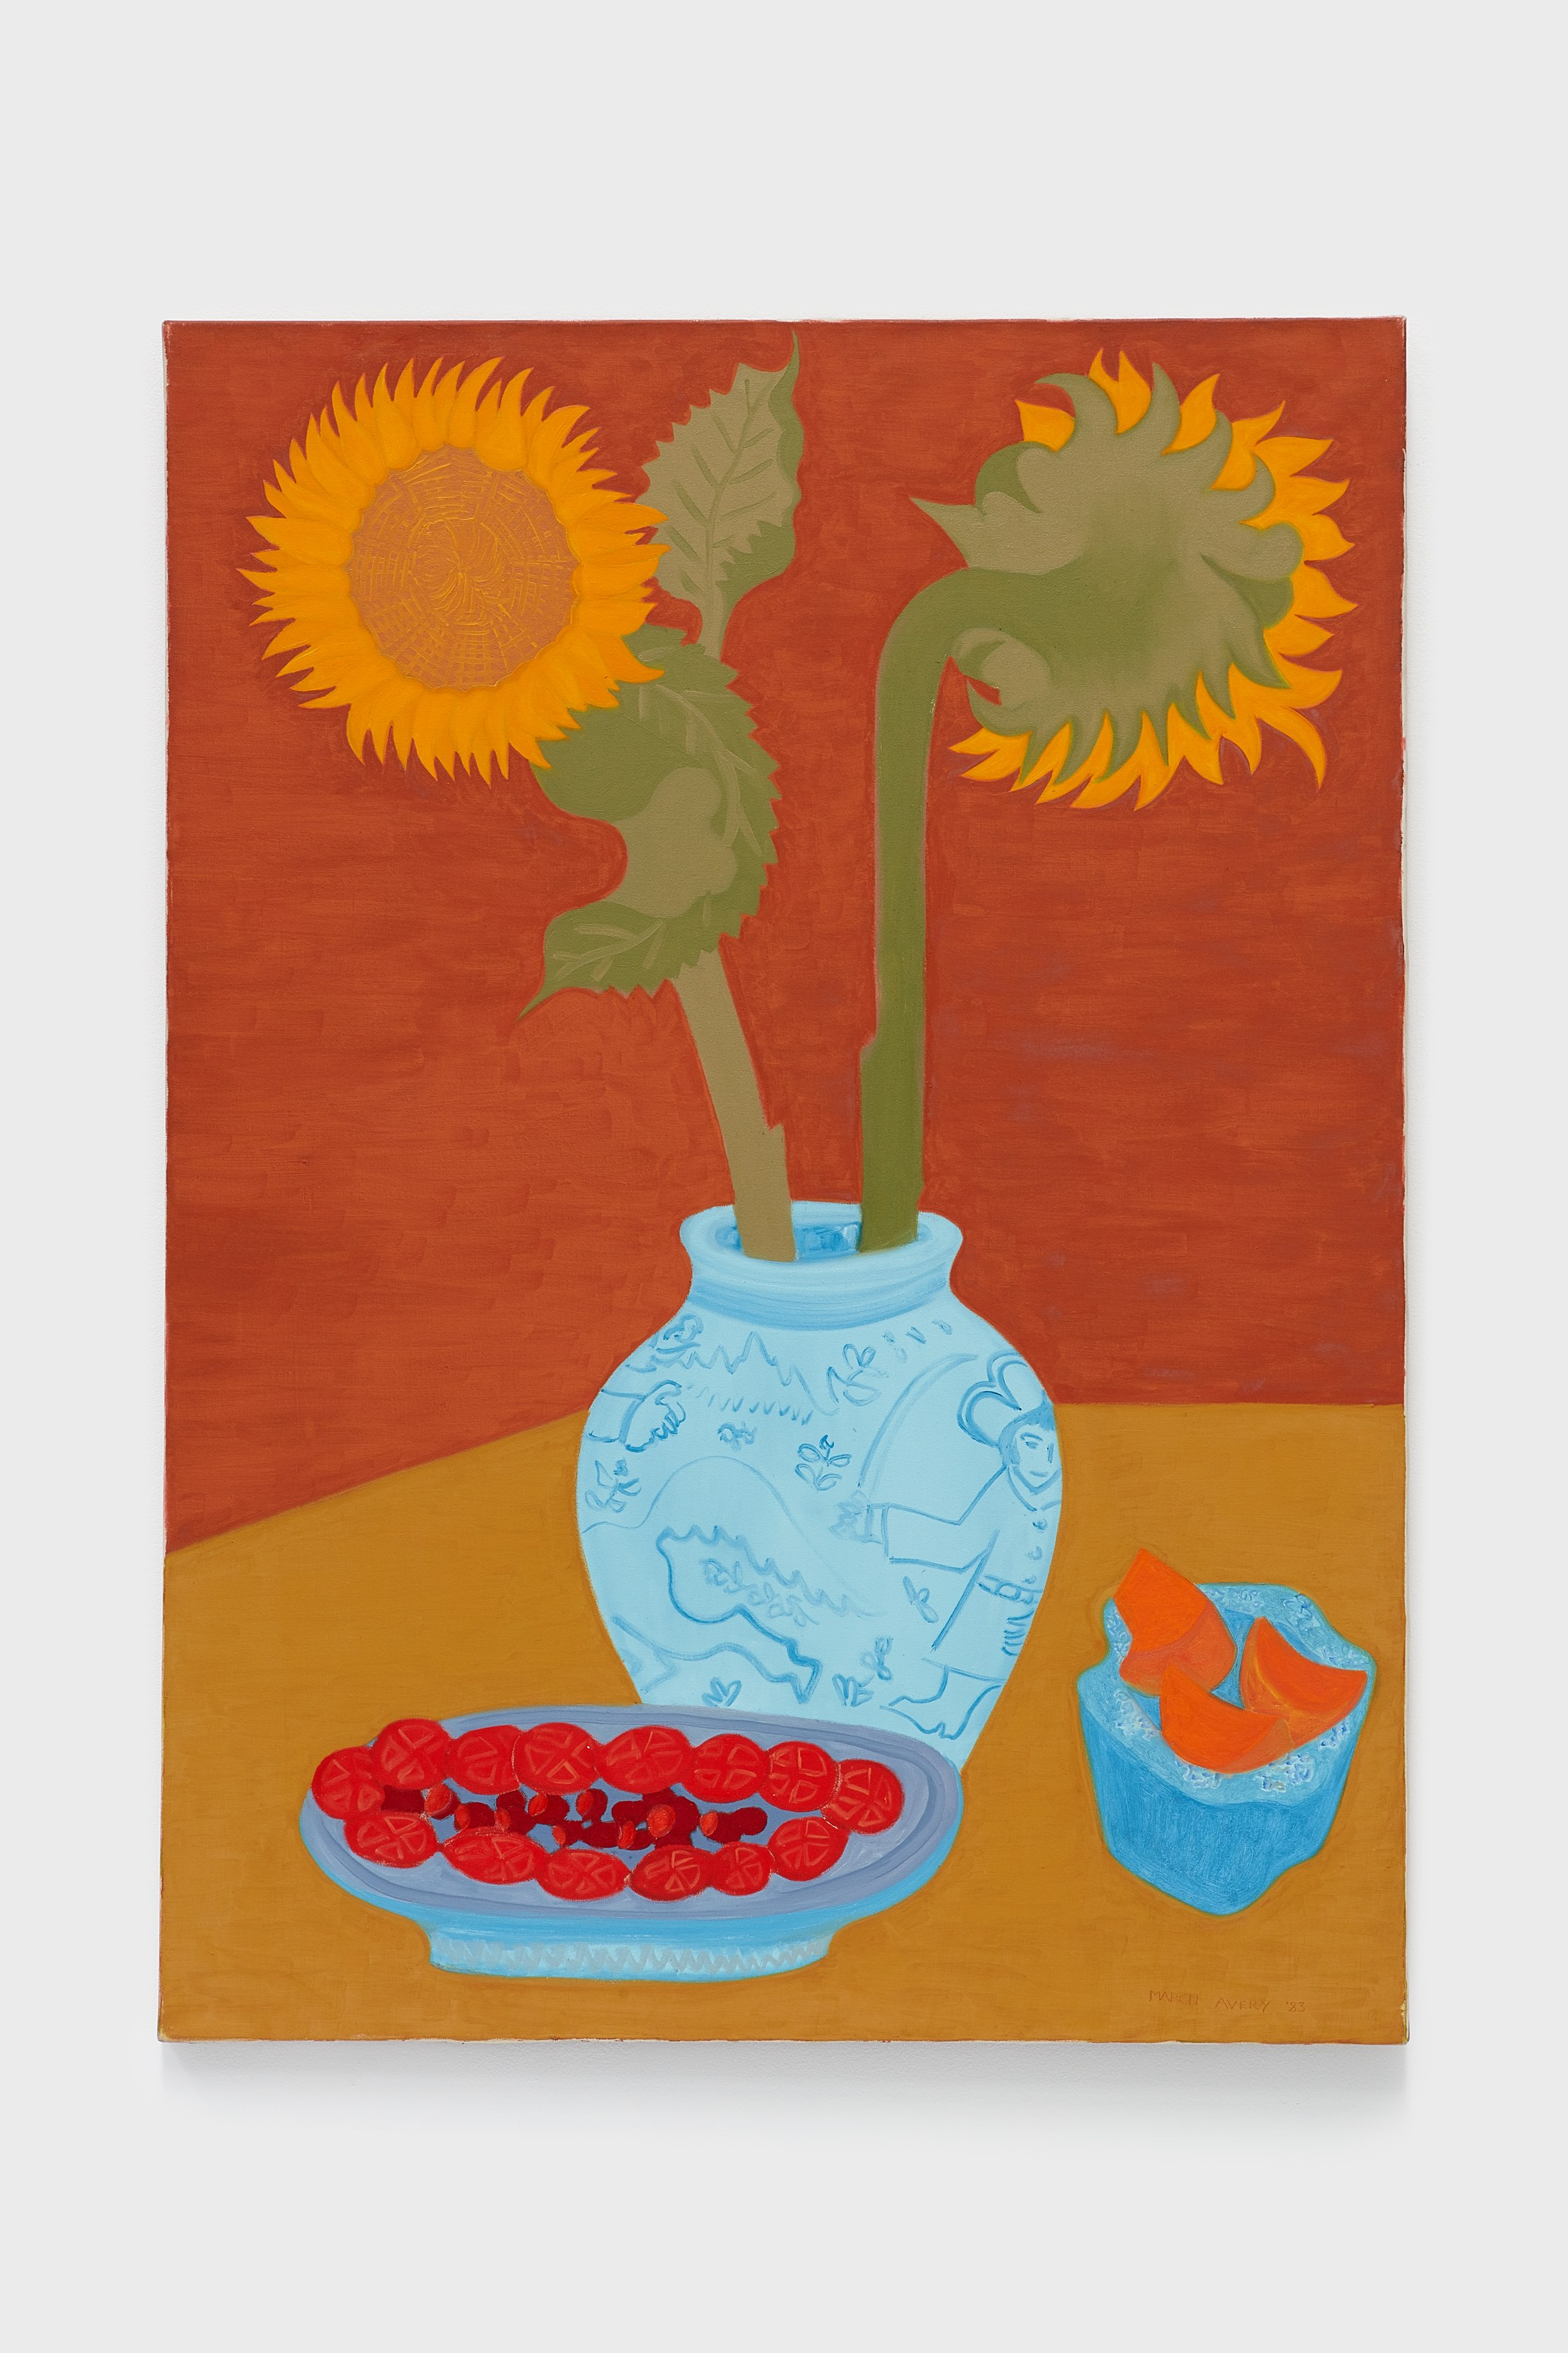 March Avery Sunflower Bouquet, 1983 Oil on canvas 50 x 36 inches © March Avery, Courtesy of the artist and Blum & Poe, Los Angeles/New York/Tokyo (Filename for internal reference: MAV 57)